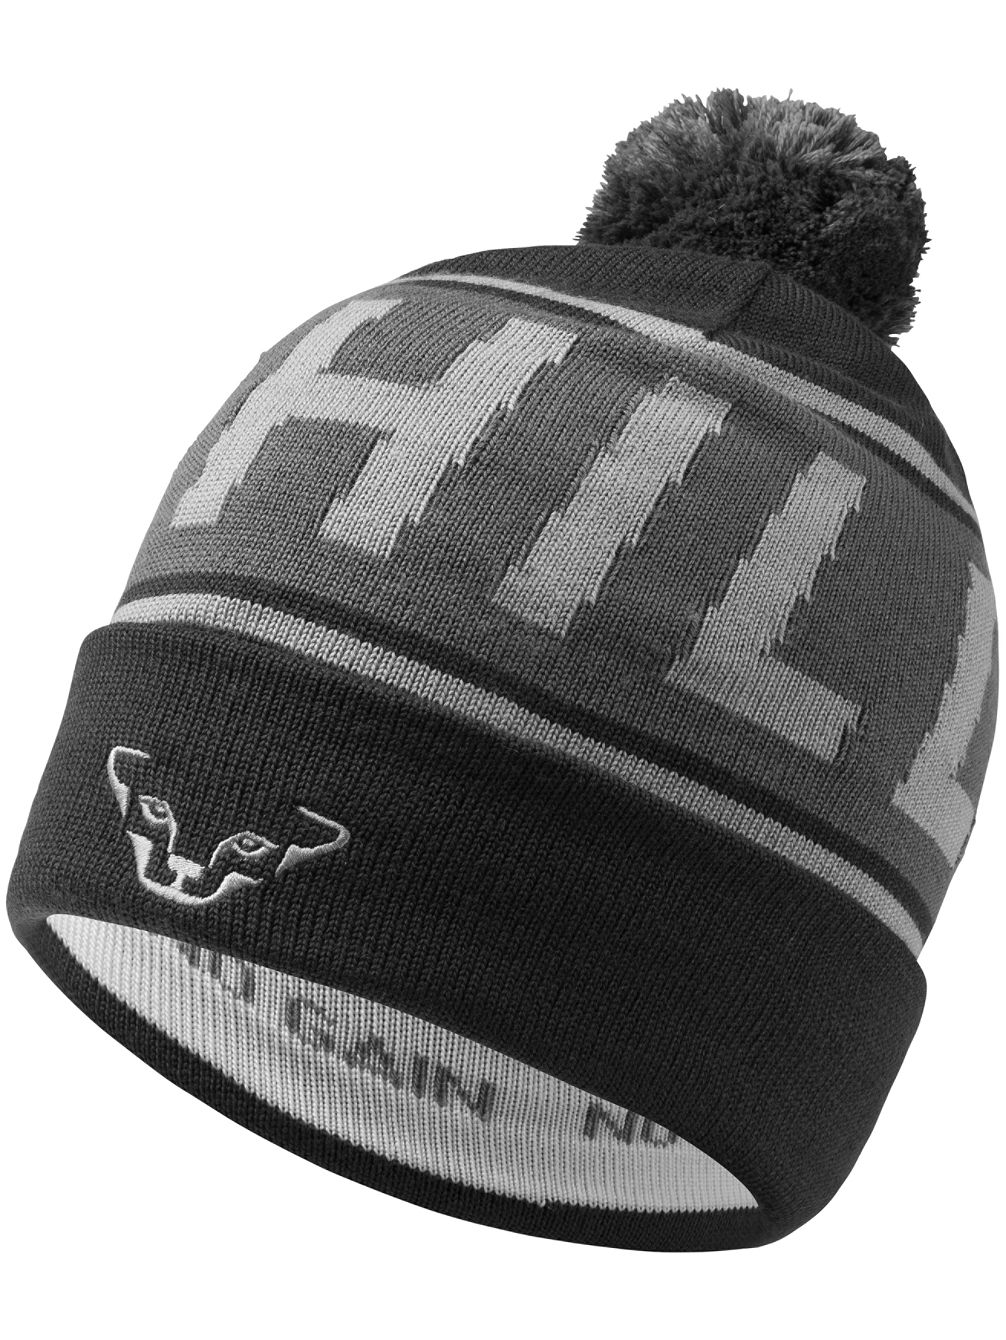 224d336034f Buy Dynafit Skiuphill Beanie online at Blue Tomato